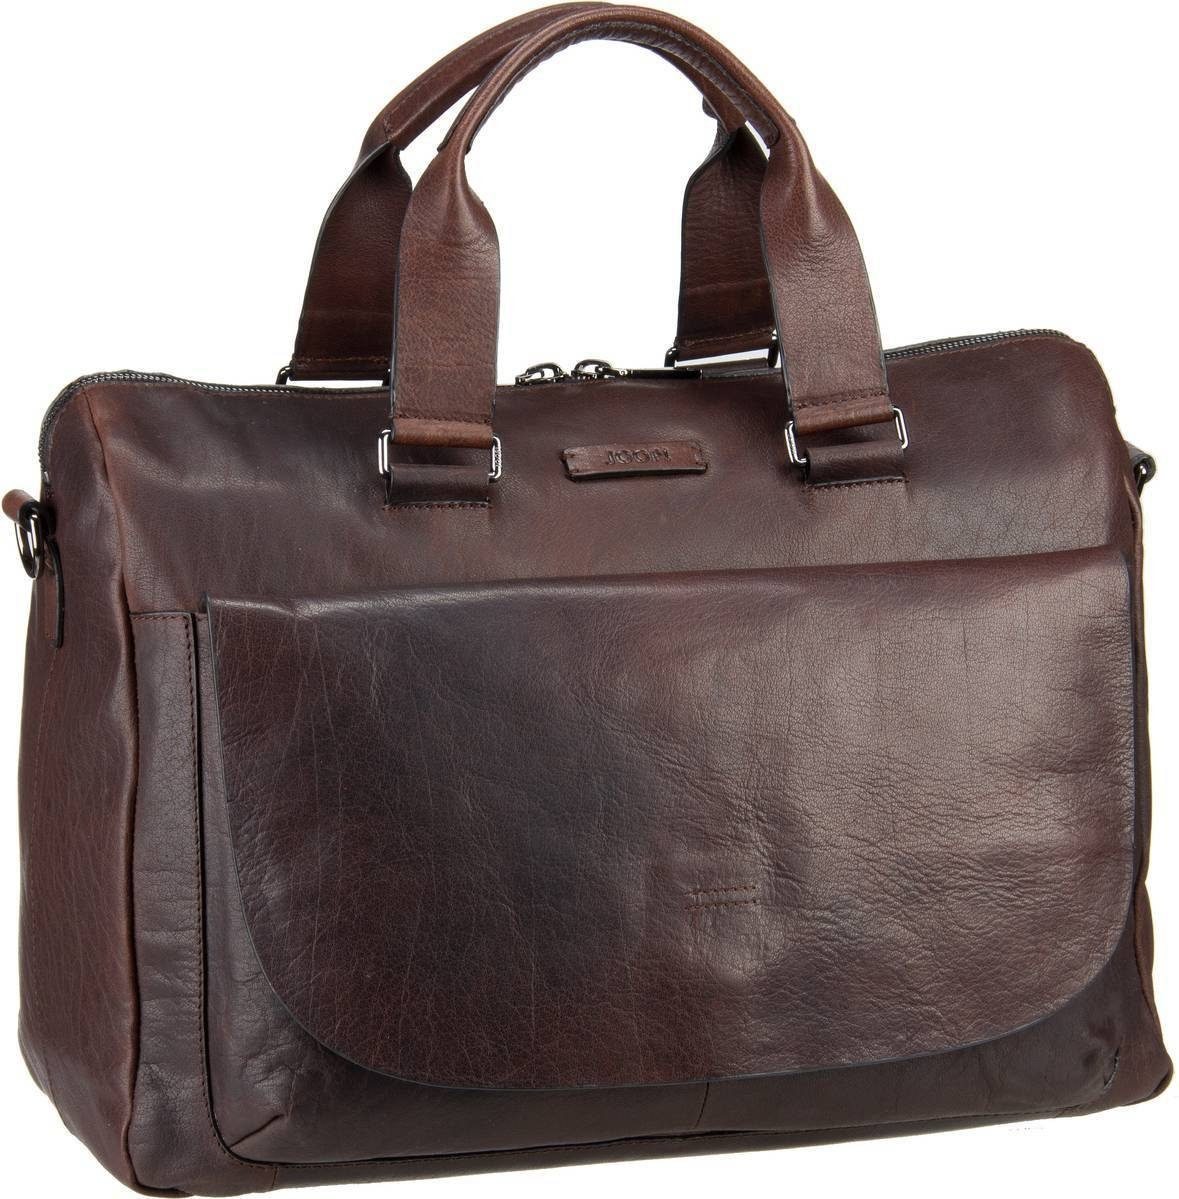 Joop Minowa Demian Brief Bag